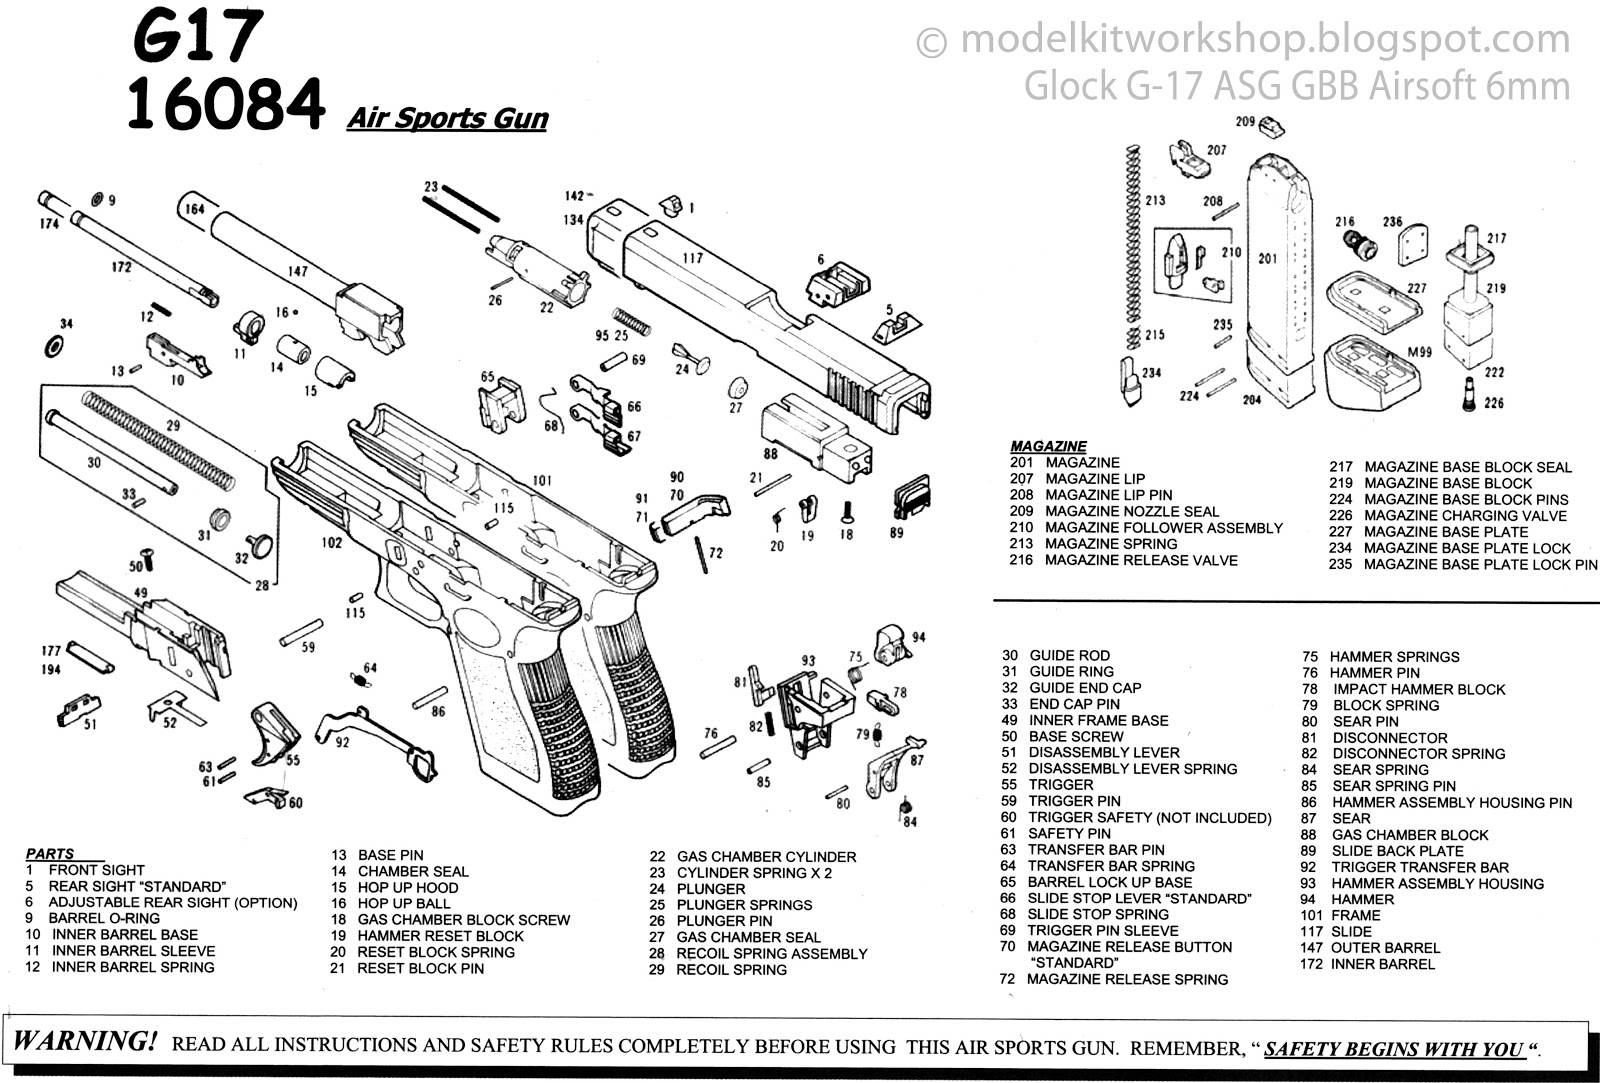 Glock Parts Diagram http://modelkitworkshop.blogspot.com/